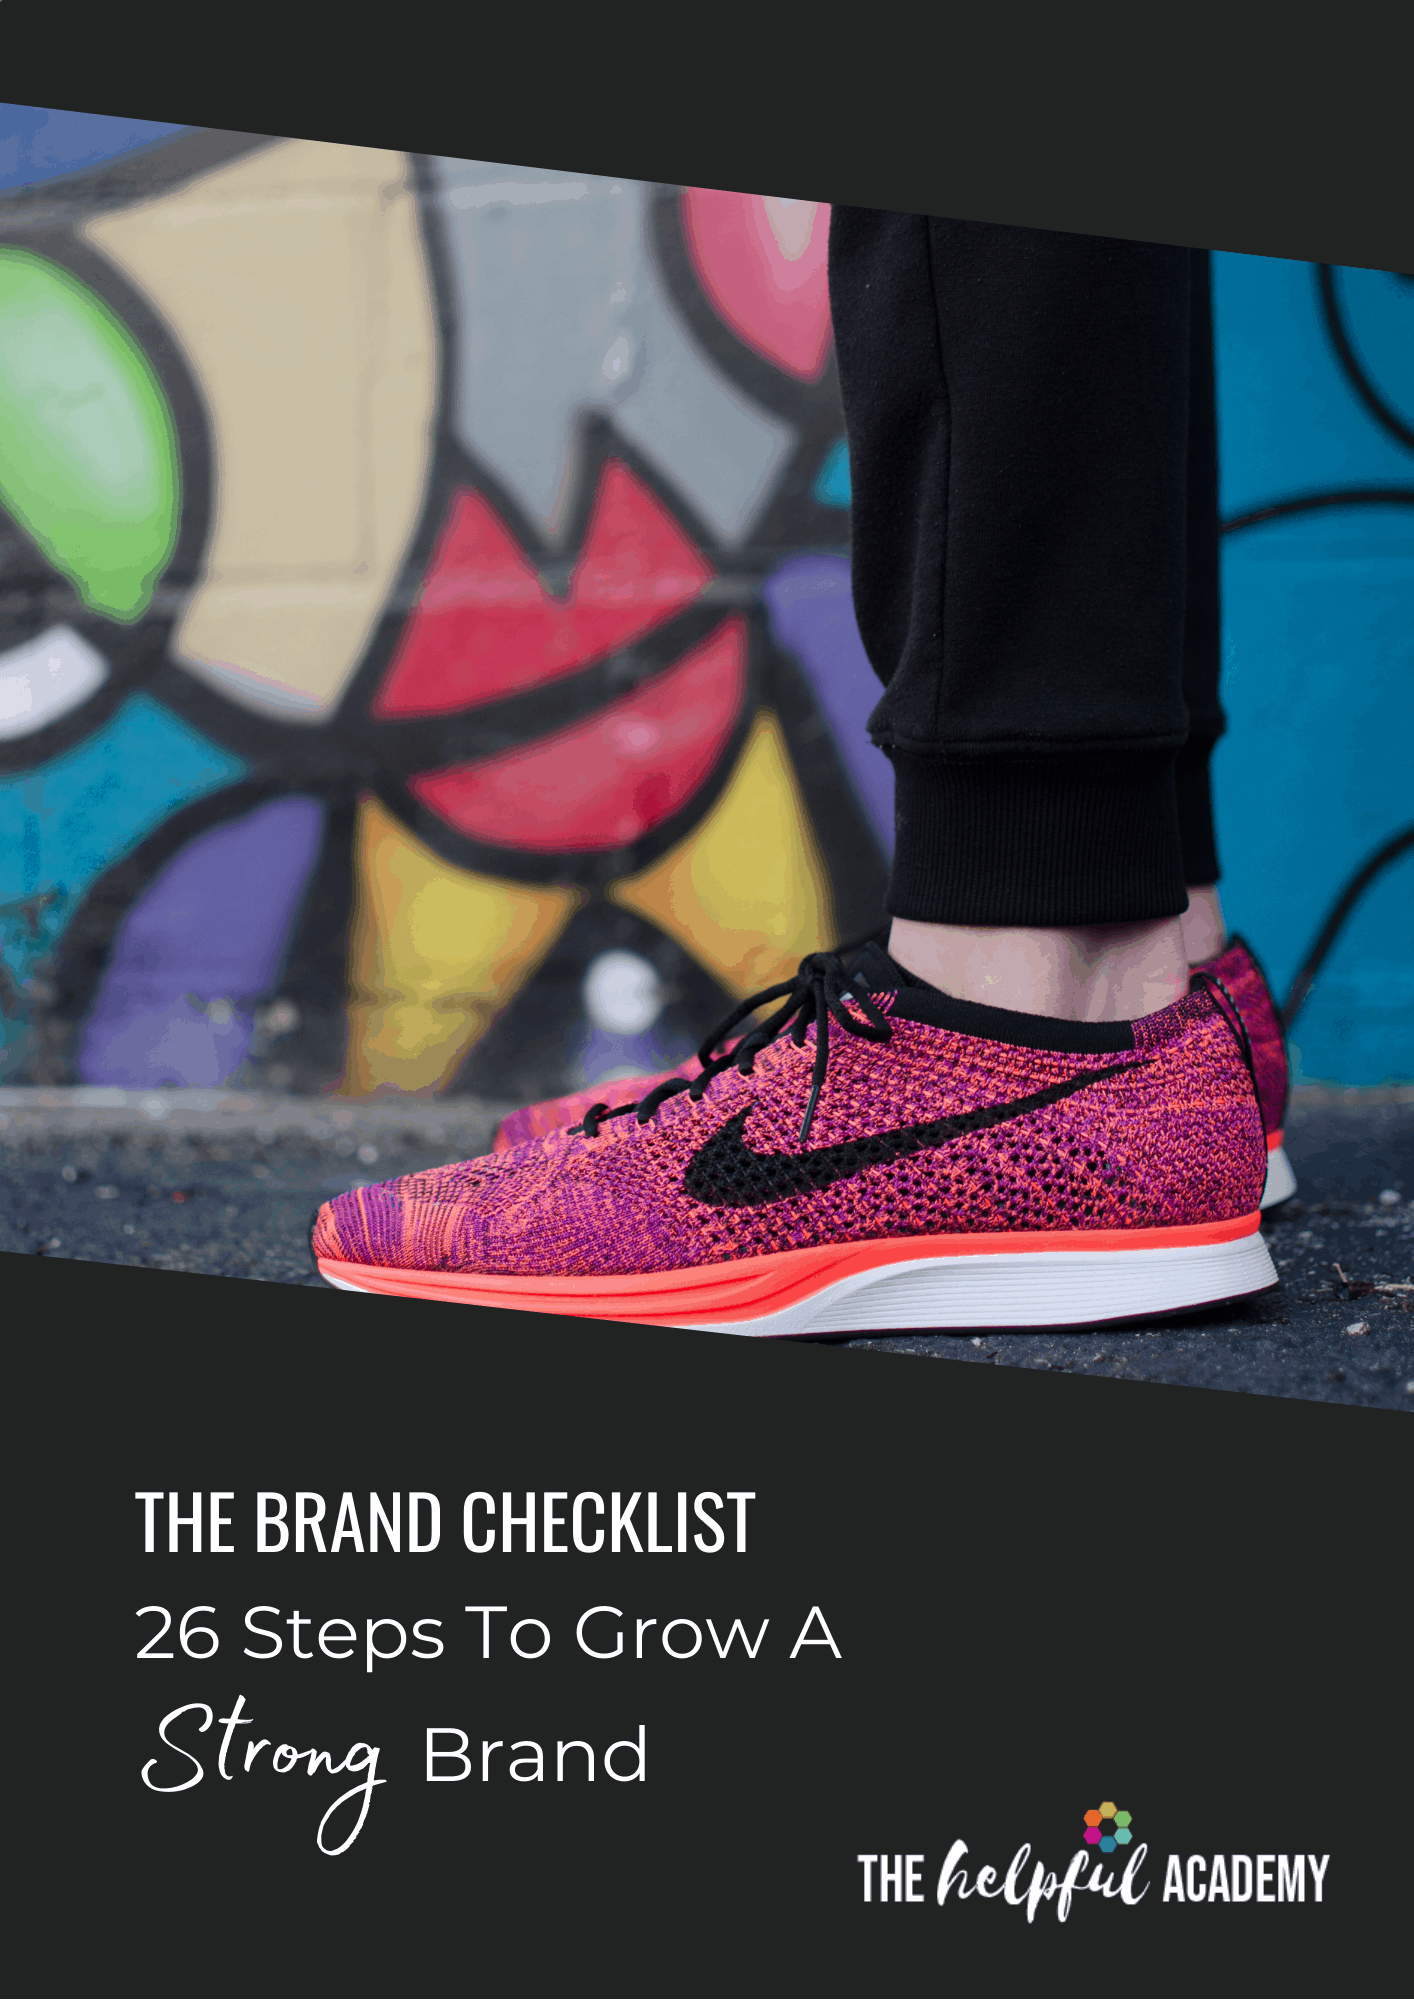 What are the steps to grow a great brand